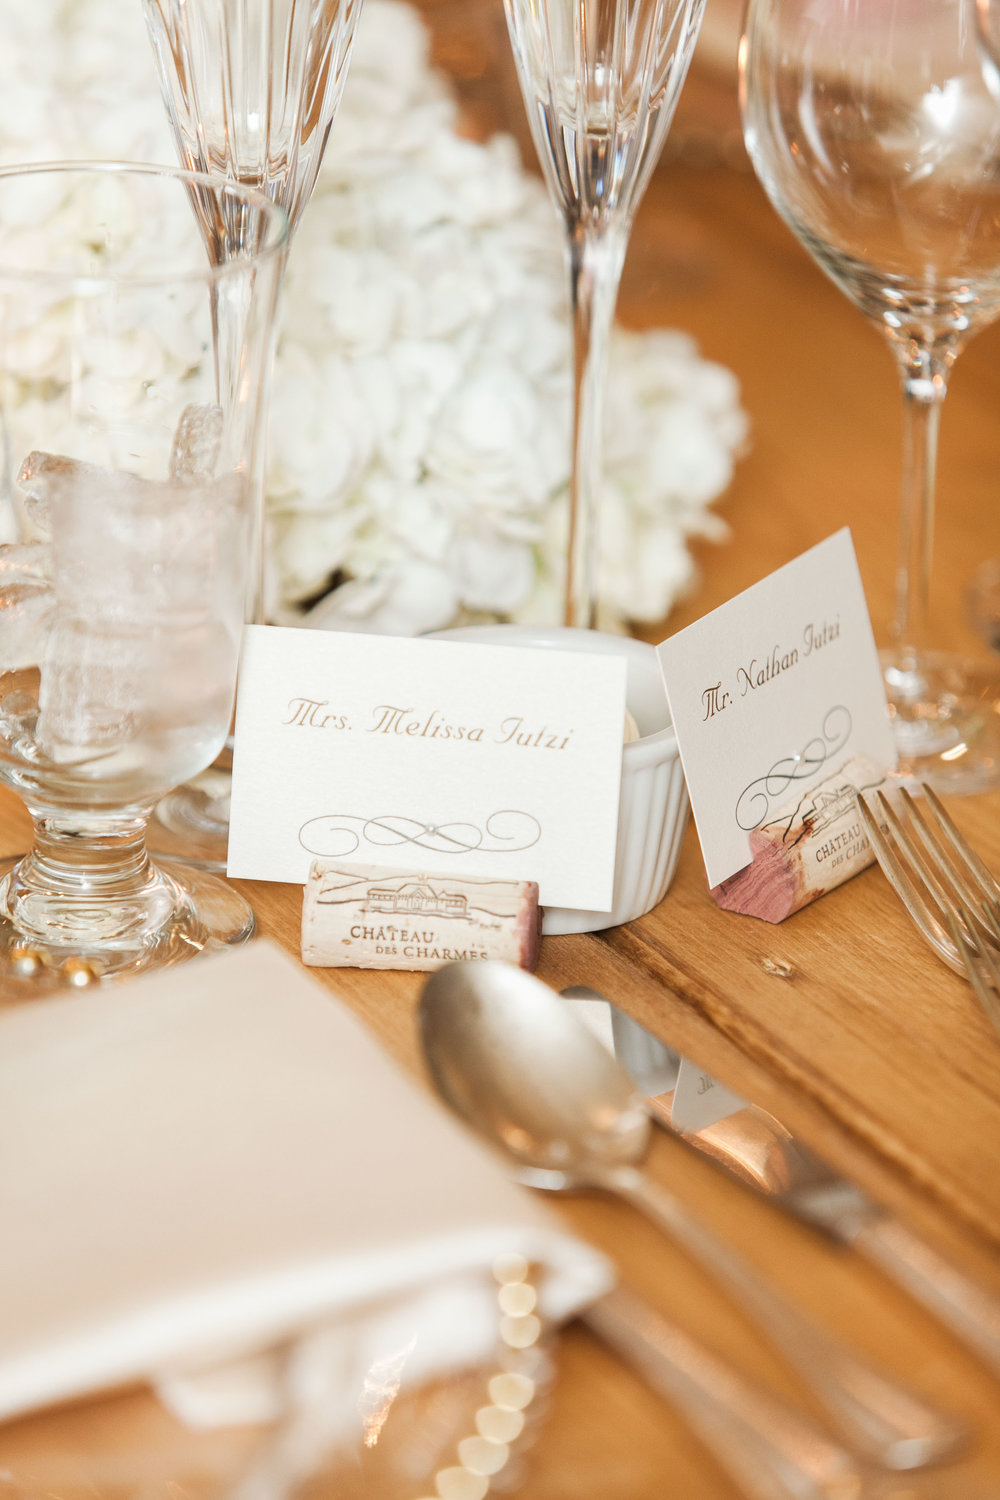 Wine cork place cards at tented wedding